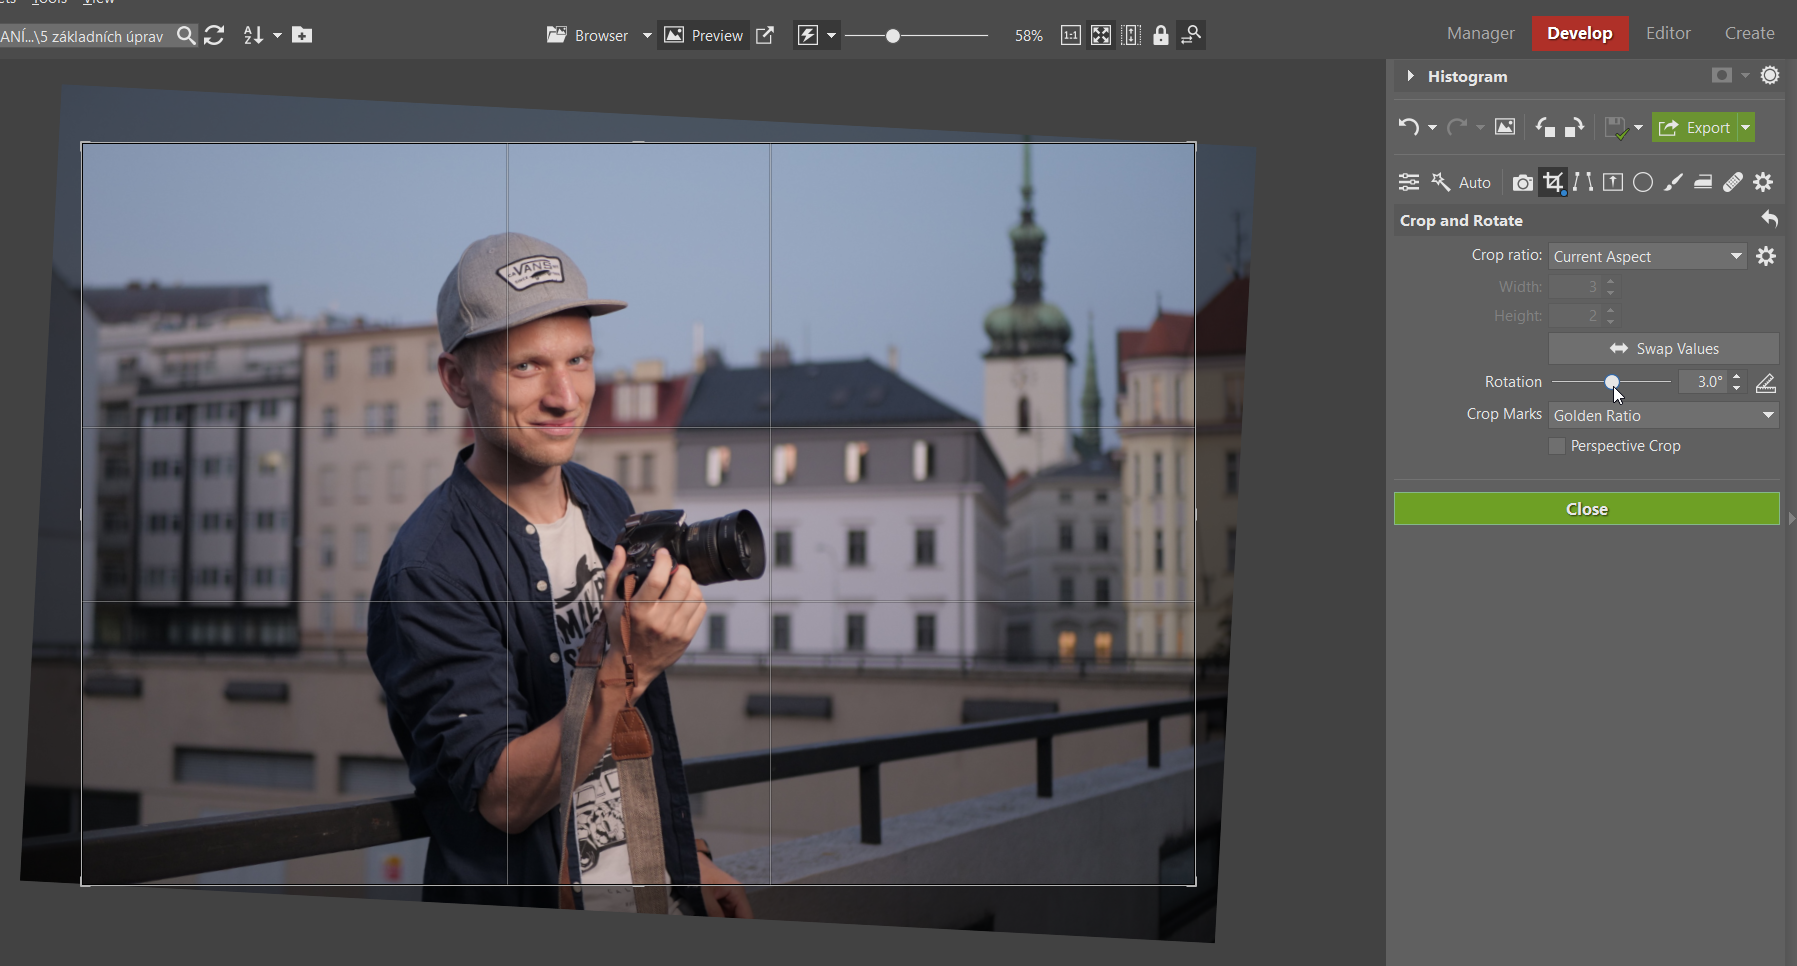 5 basic edits to improve your photography